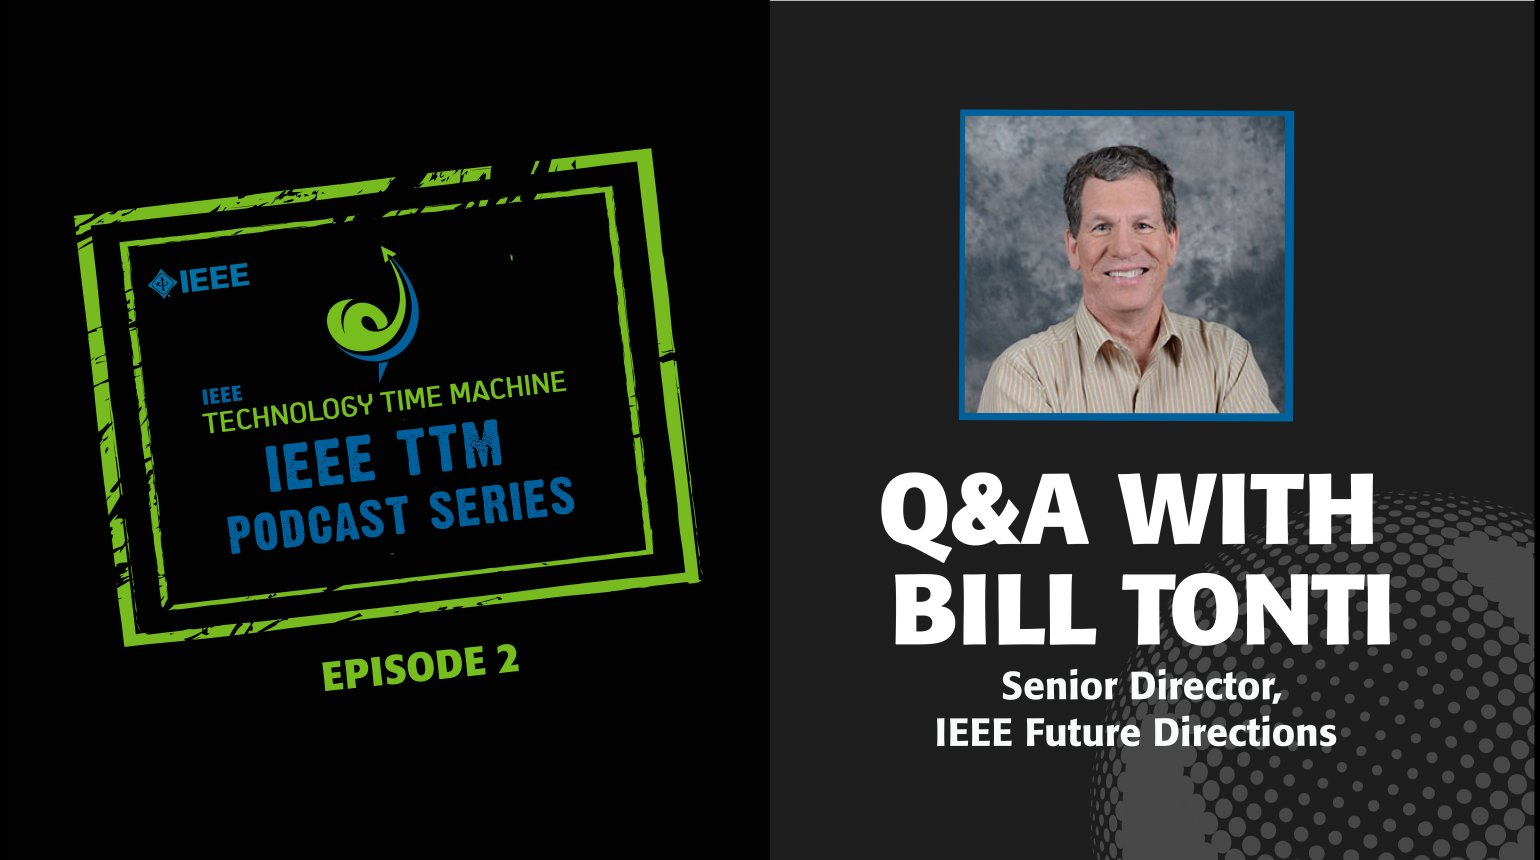 Q&A with Bill Tonti: IEEE Technology Time Machine Podcast, Episode 2